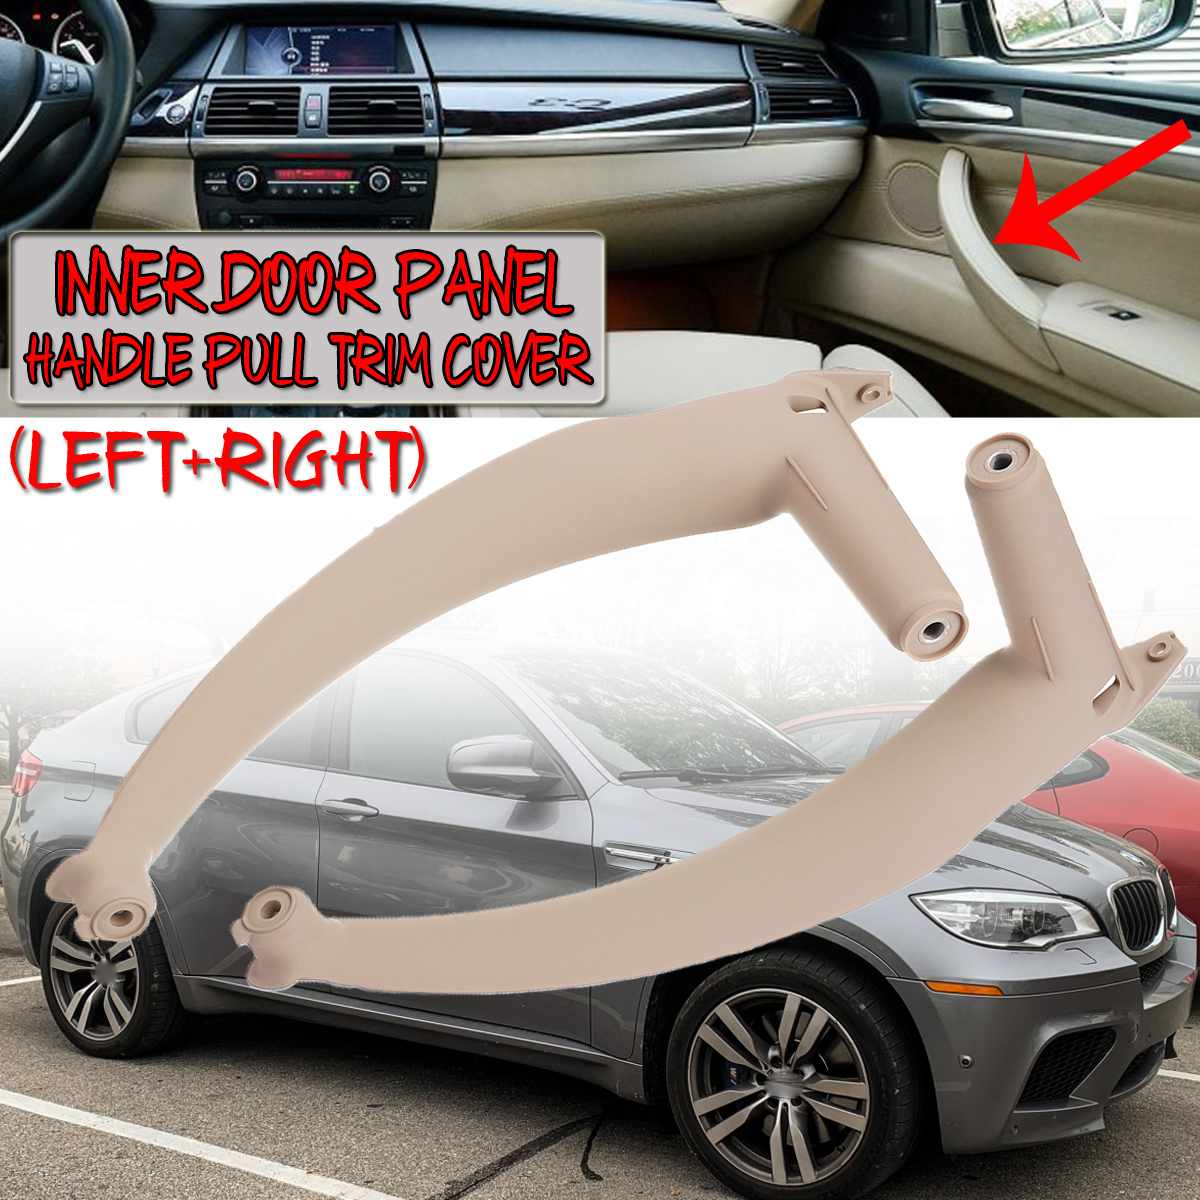 3 Colors Inner Door Panel Handle Pull Trim Cover for BMW X5 X6 E70 E71